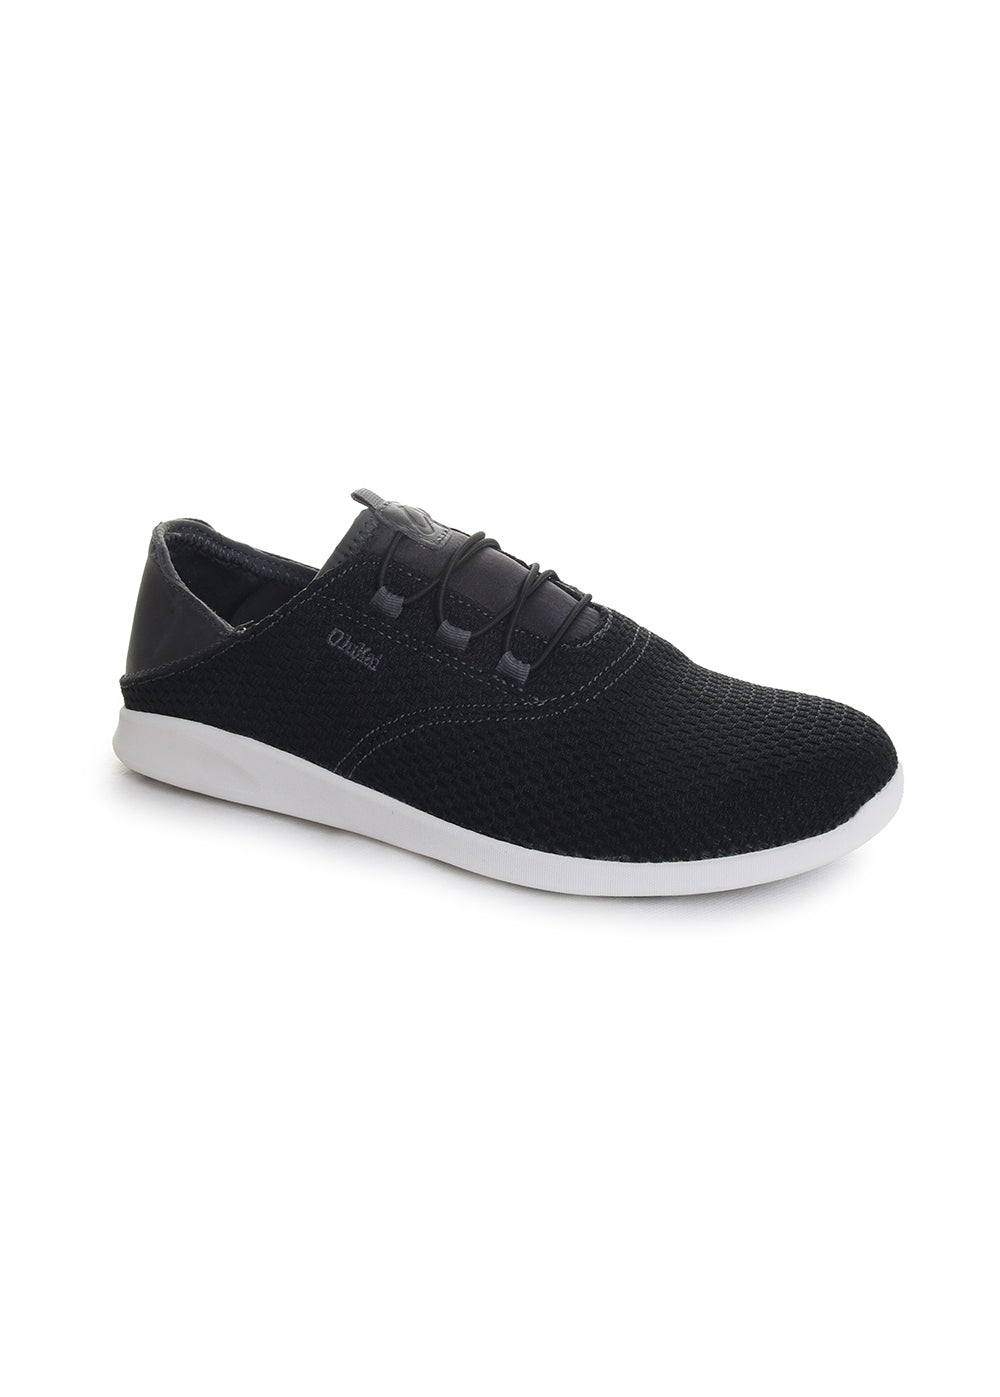 OluKai Alapa Li SlipOn Sneaker in Black Dark Shadow